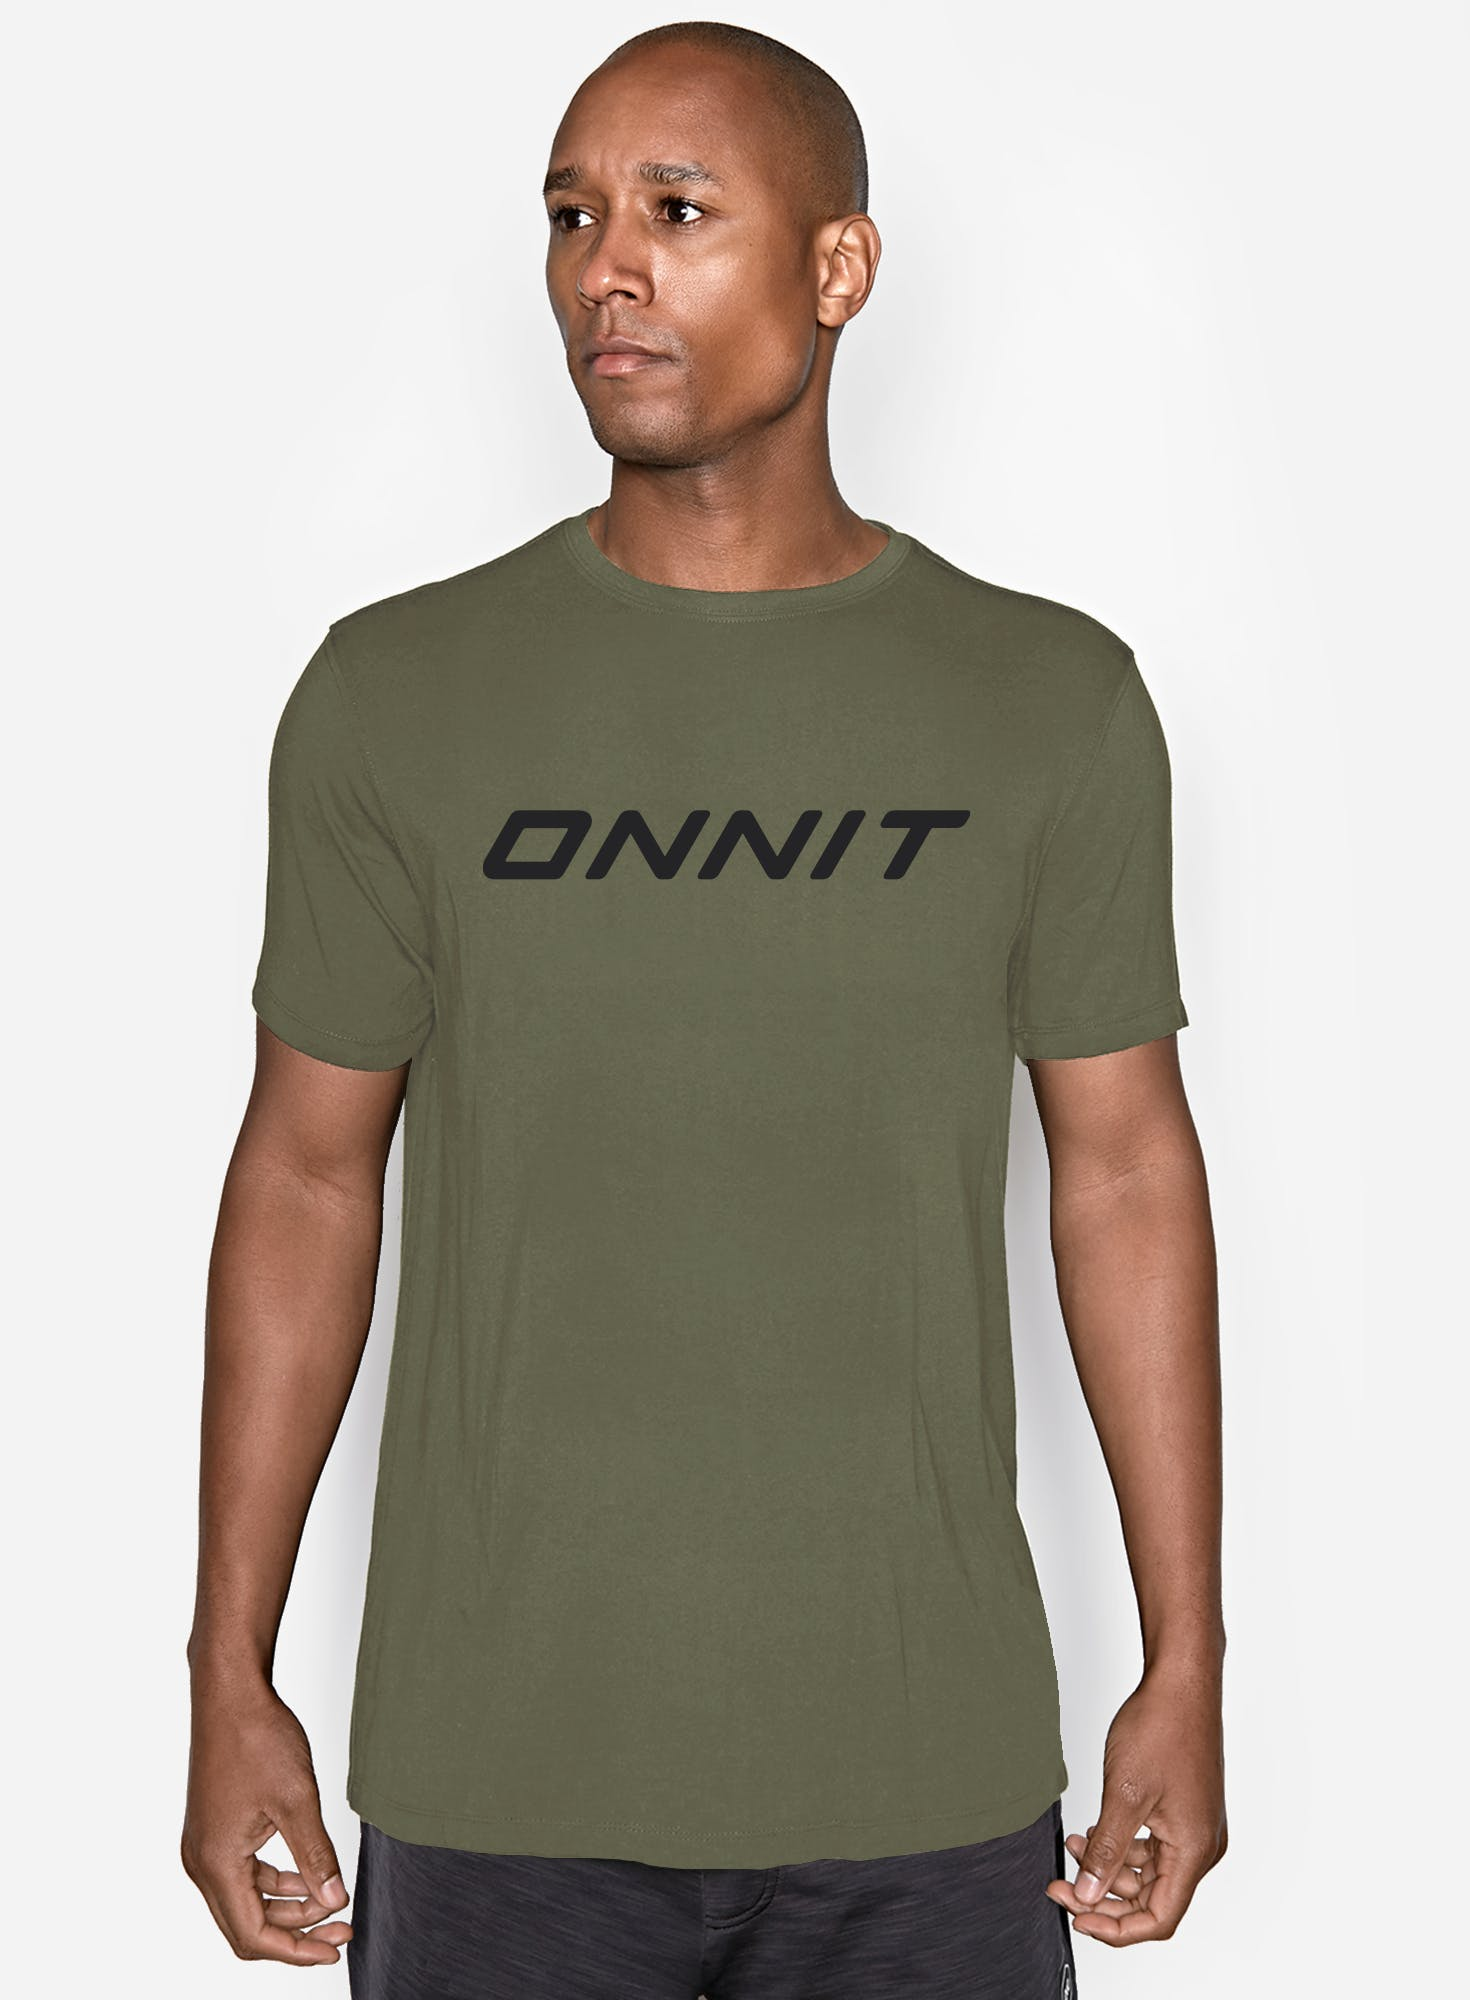 Onnit Type Bamboo T-Shirt